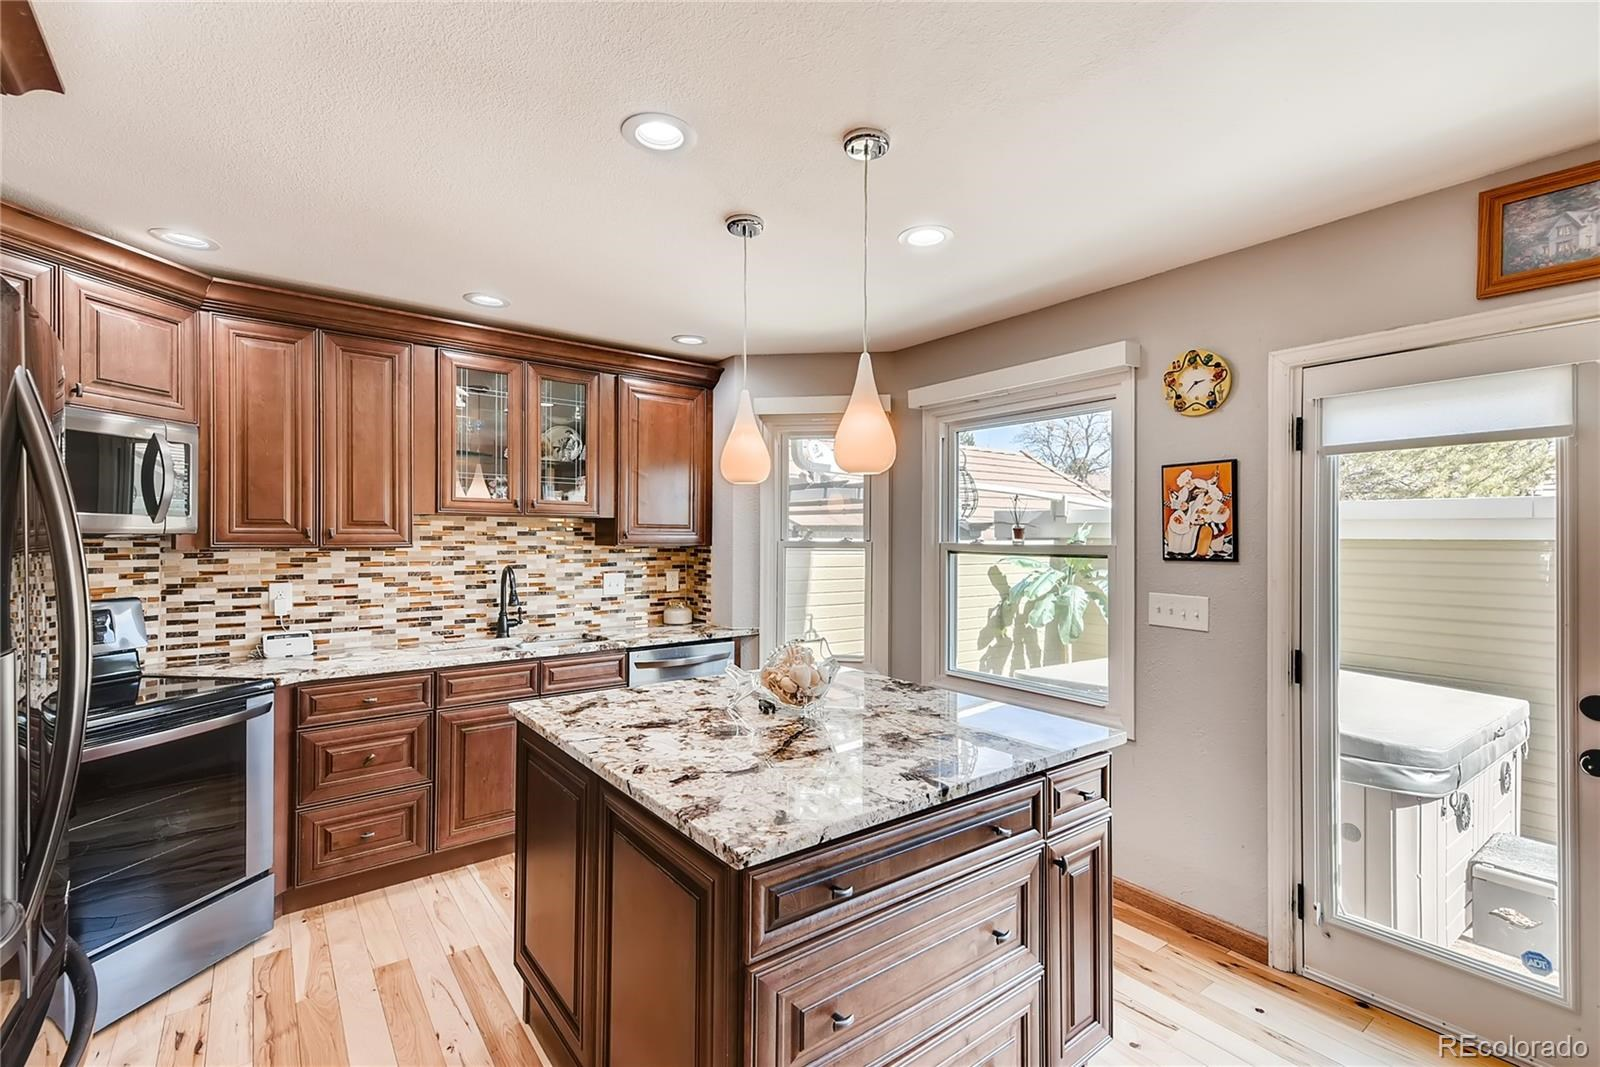 MLS# 6910180 - 4 - 2336 Ranch Drive, Westminster, CO 80234